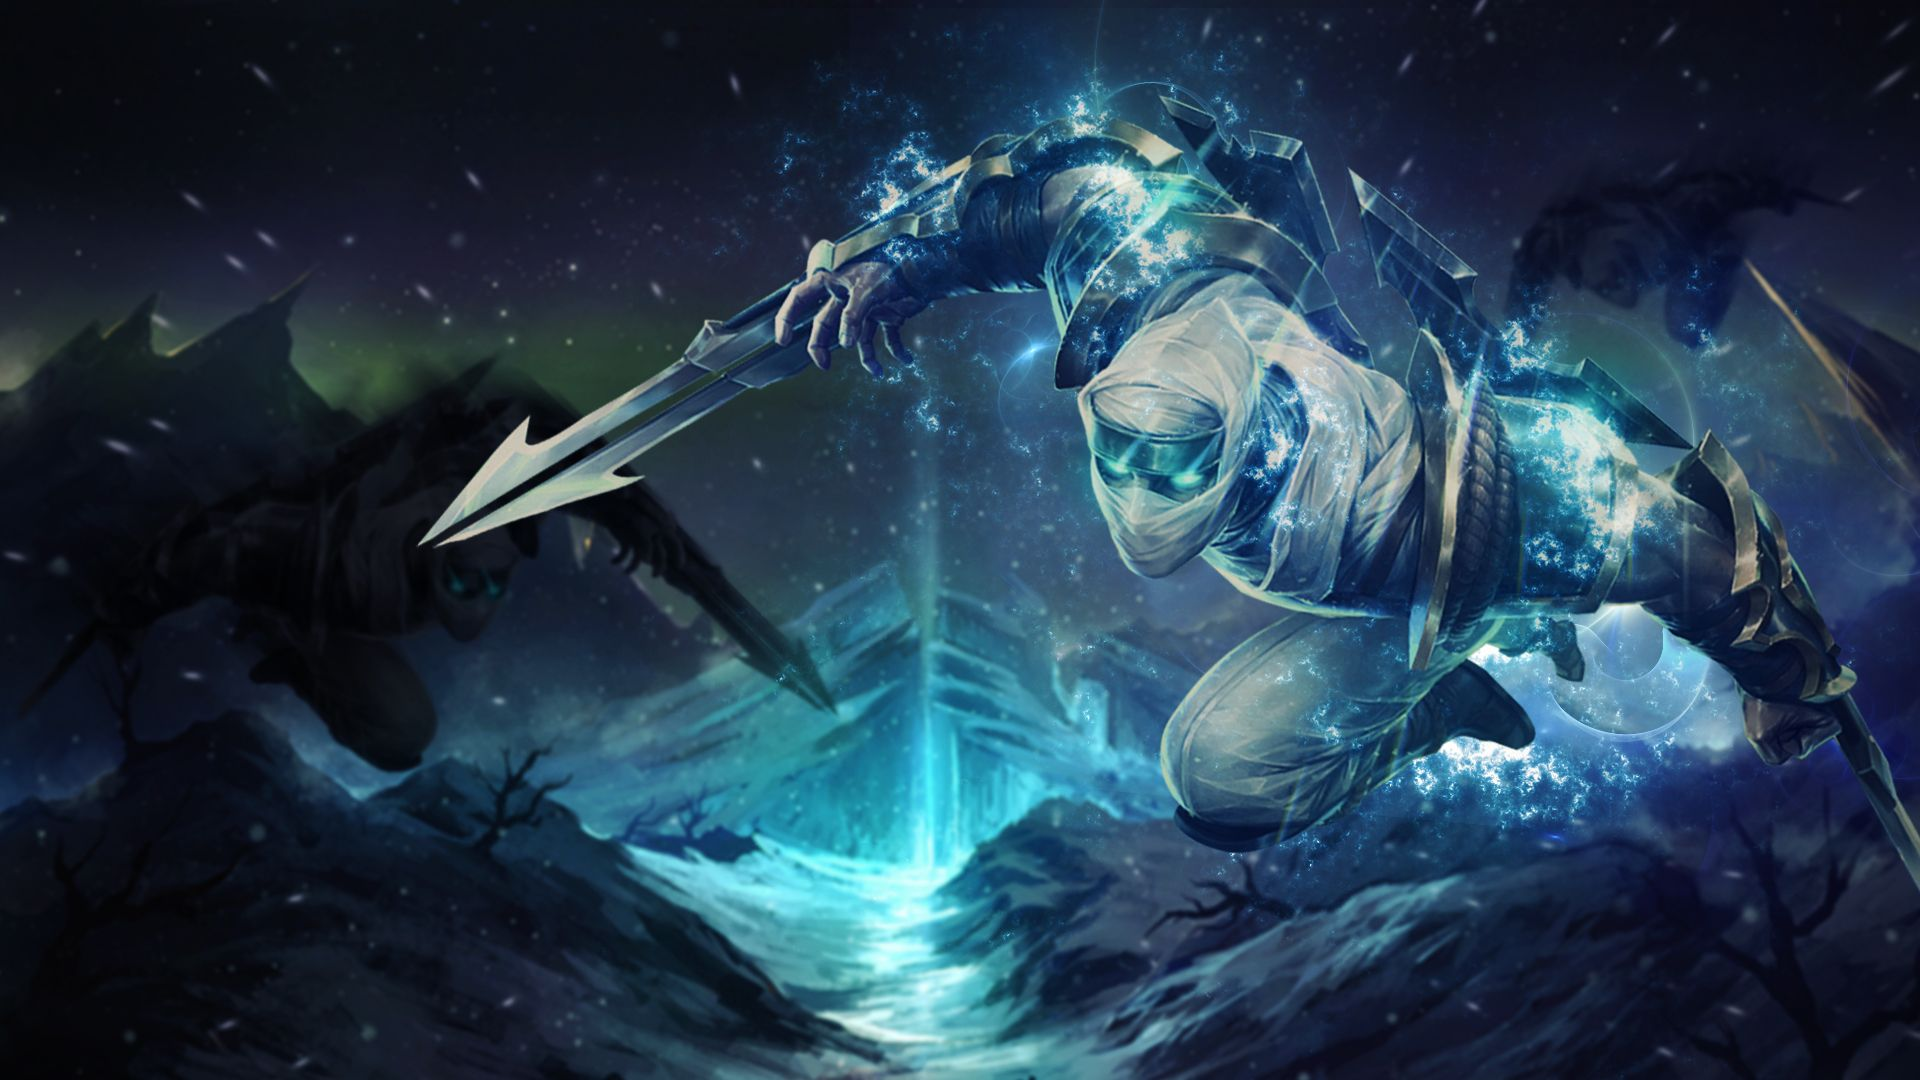 League Of Legends Zed Wallpaper Full Hd Is Cool Wallpapers